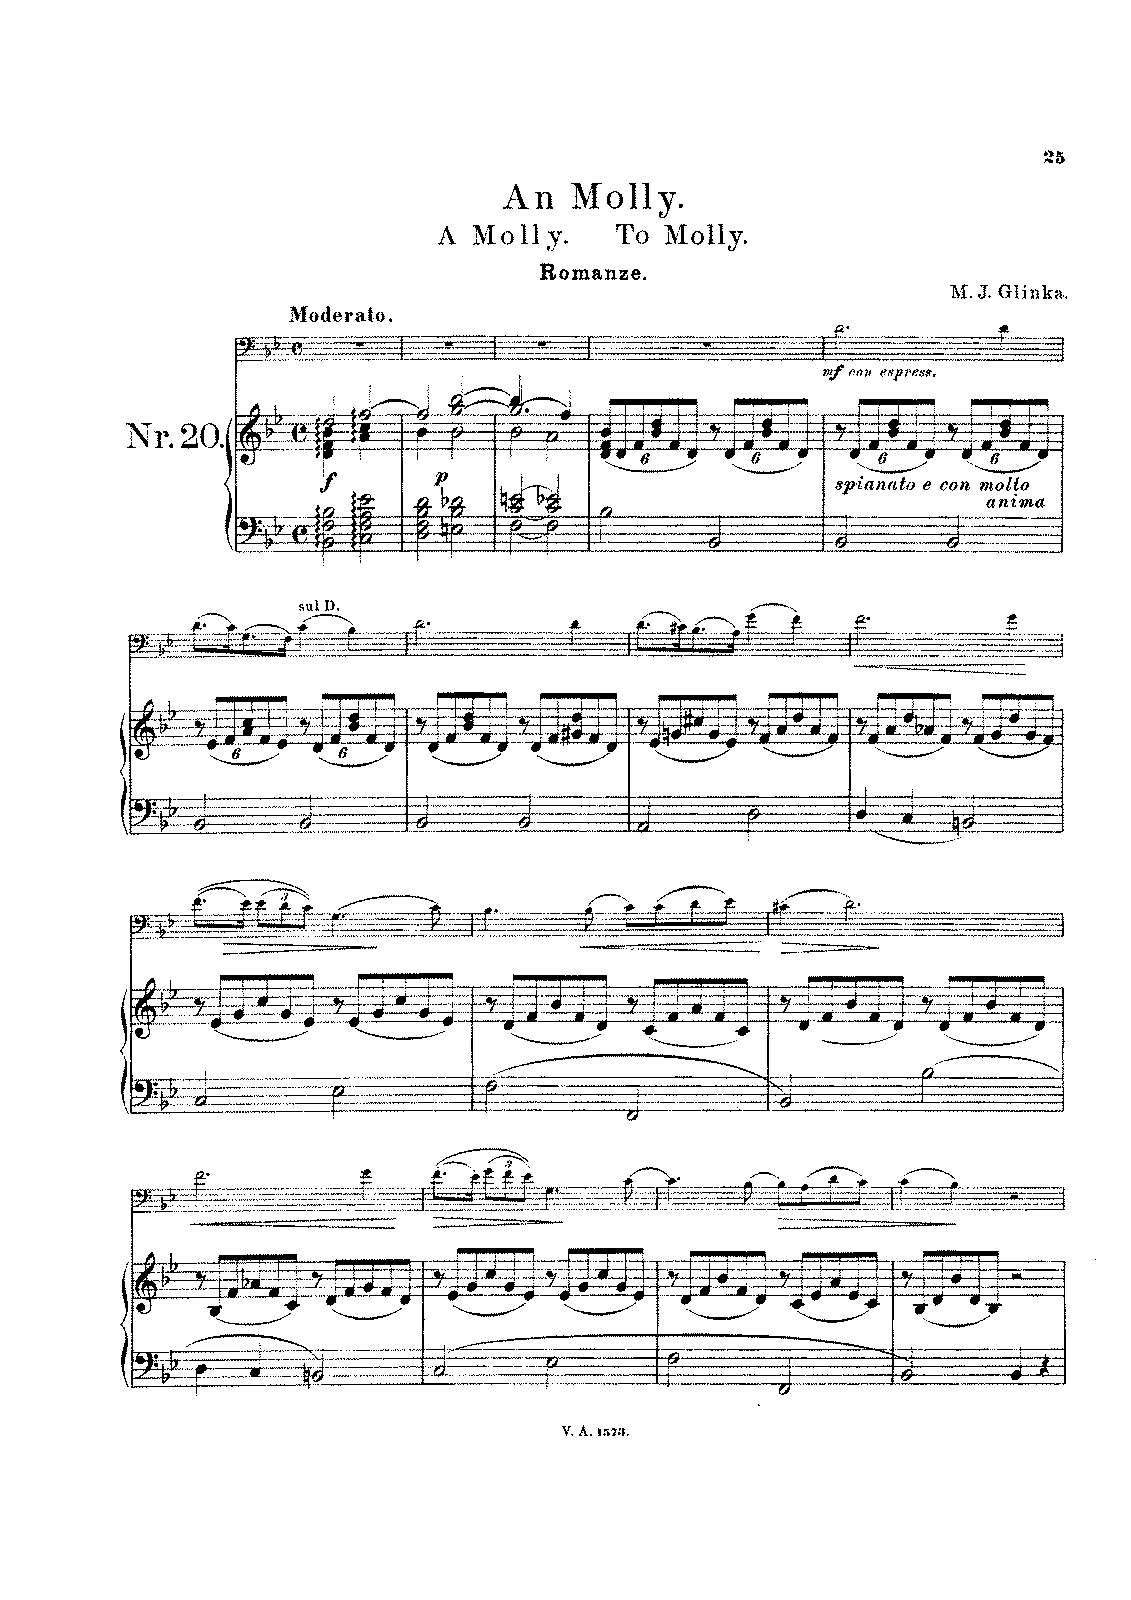 PMLP26581-Glinka - To Molly Romanze (Salter) for Cello and Piano score.pdf